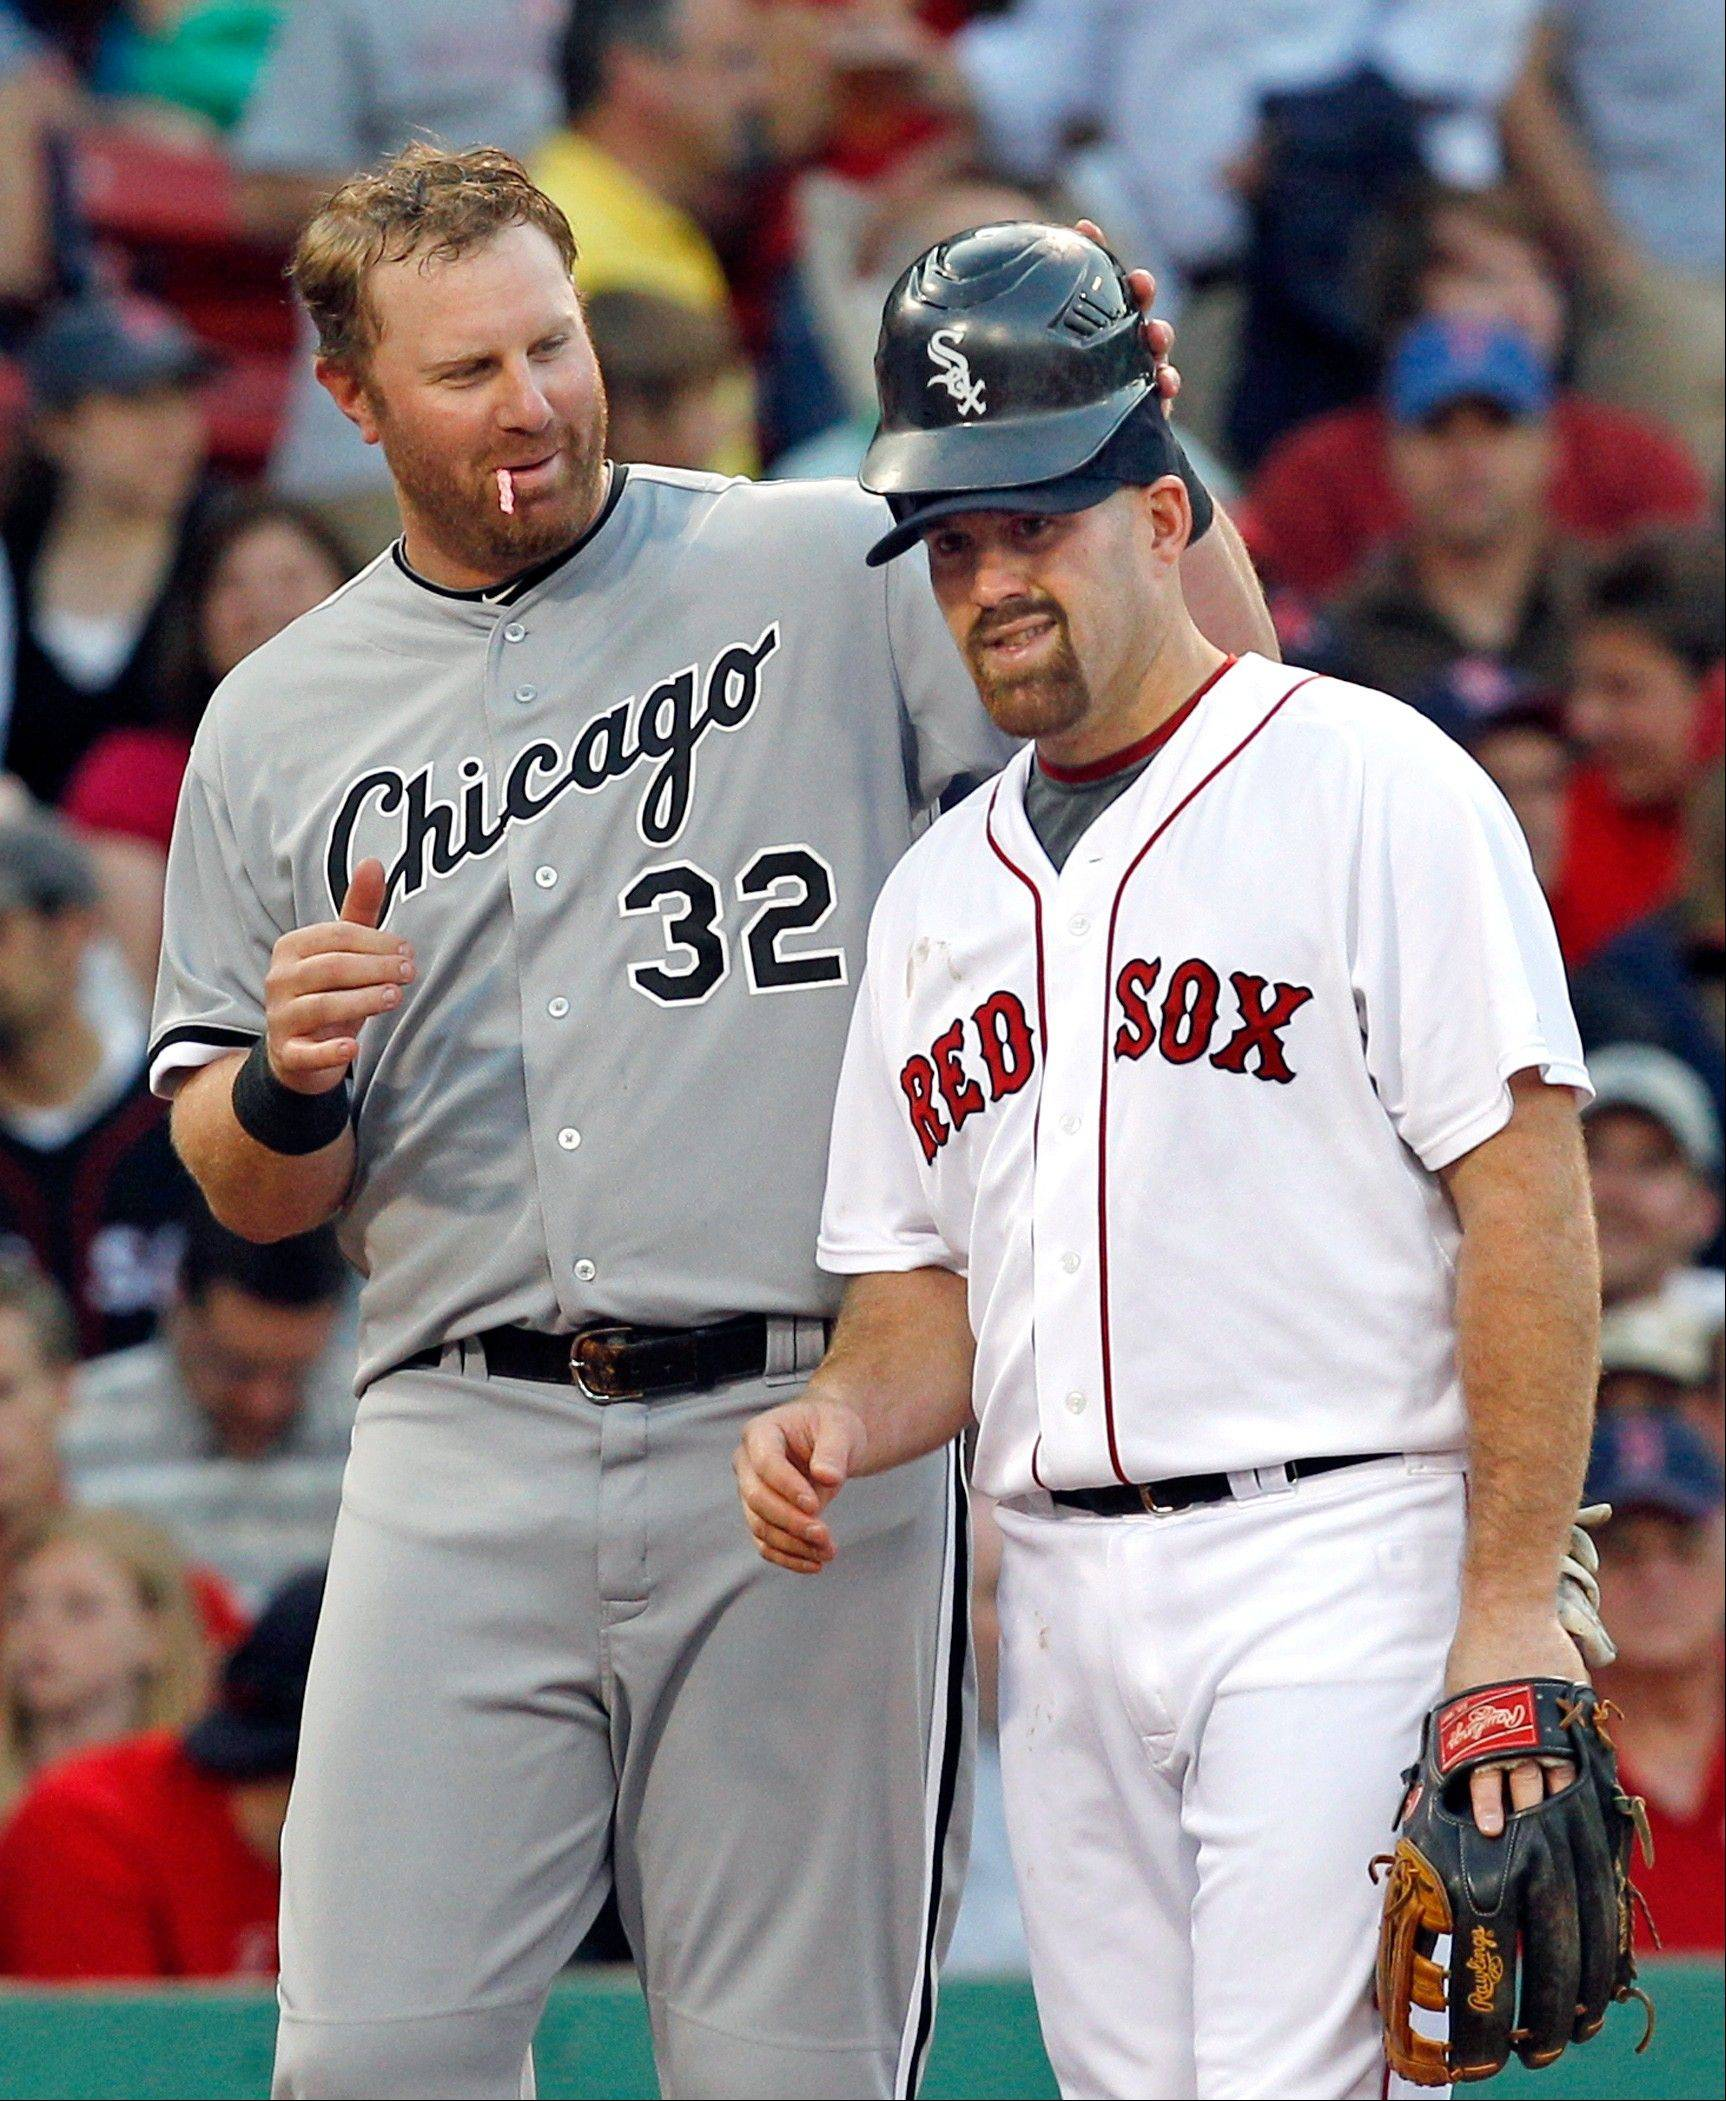 White Sox slugger Adam Dunn playfully puts his batting helmet on Kevin Youkilis during a game last year at Fenway Park. Youkilis will now put on his own White Sox uniform after being acquired Sunday in a trade with the Boston Red Sox.